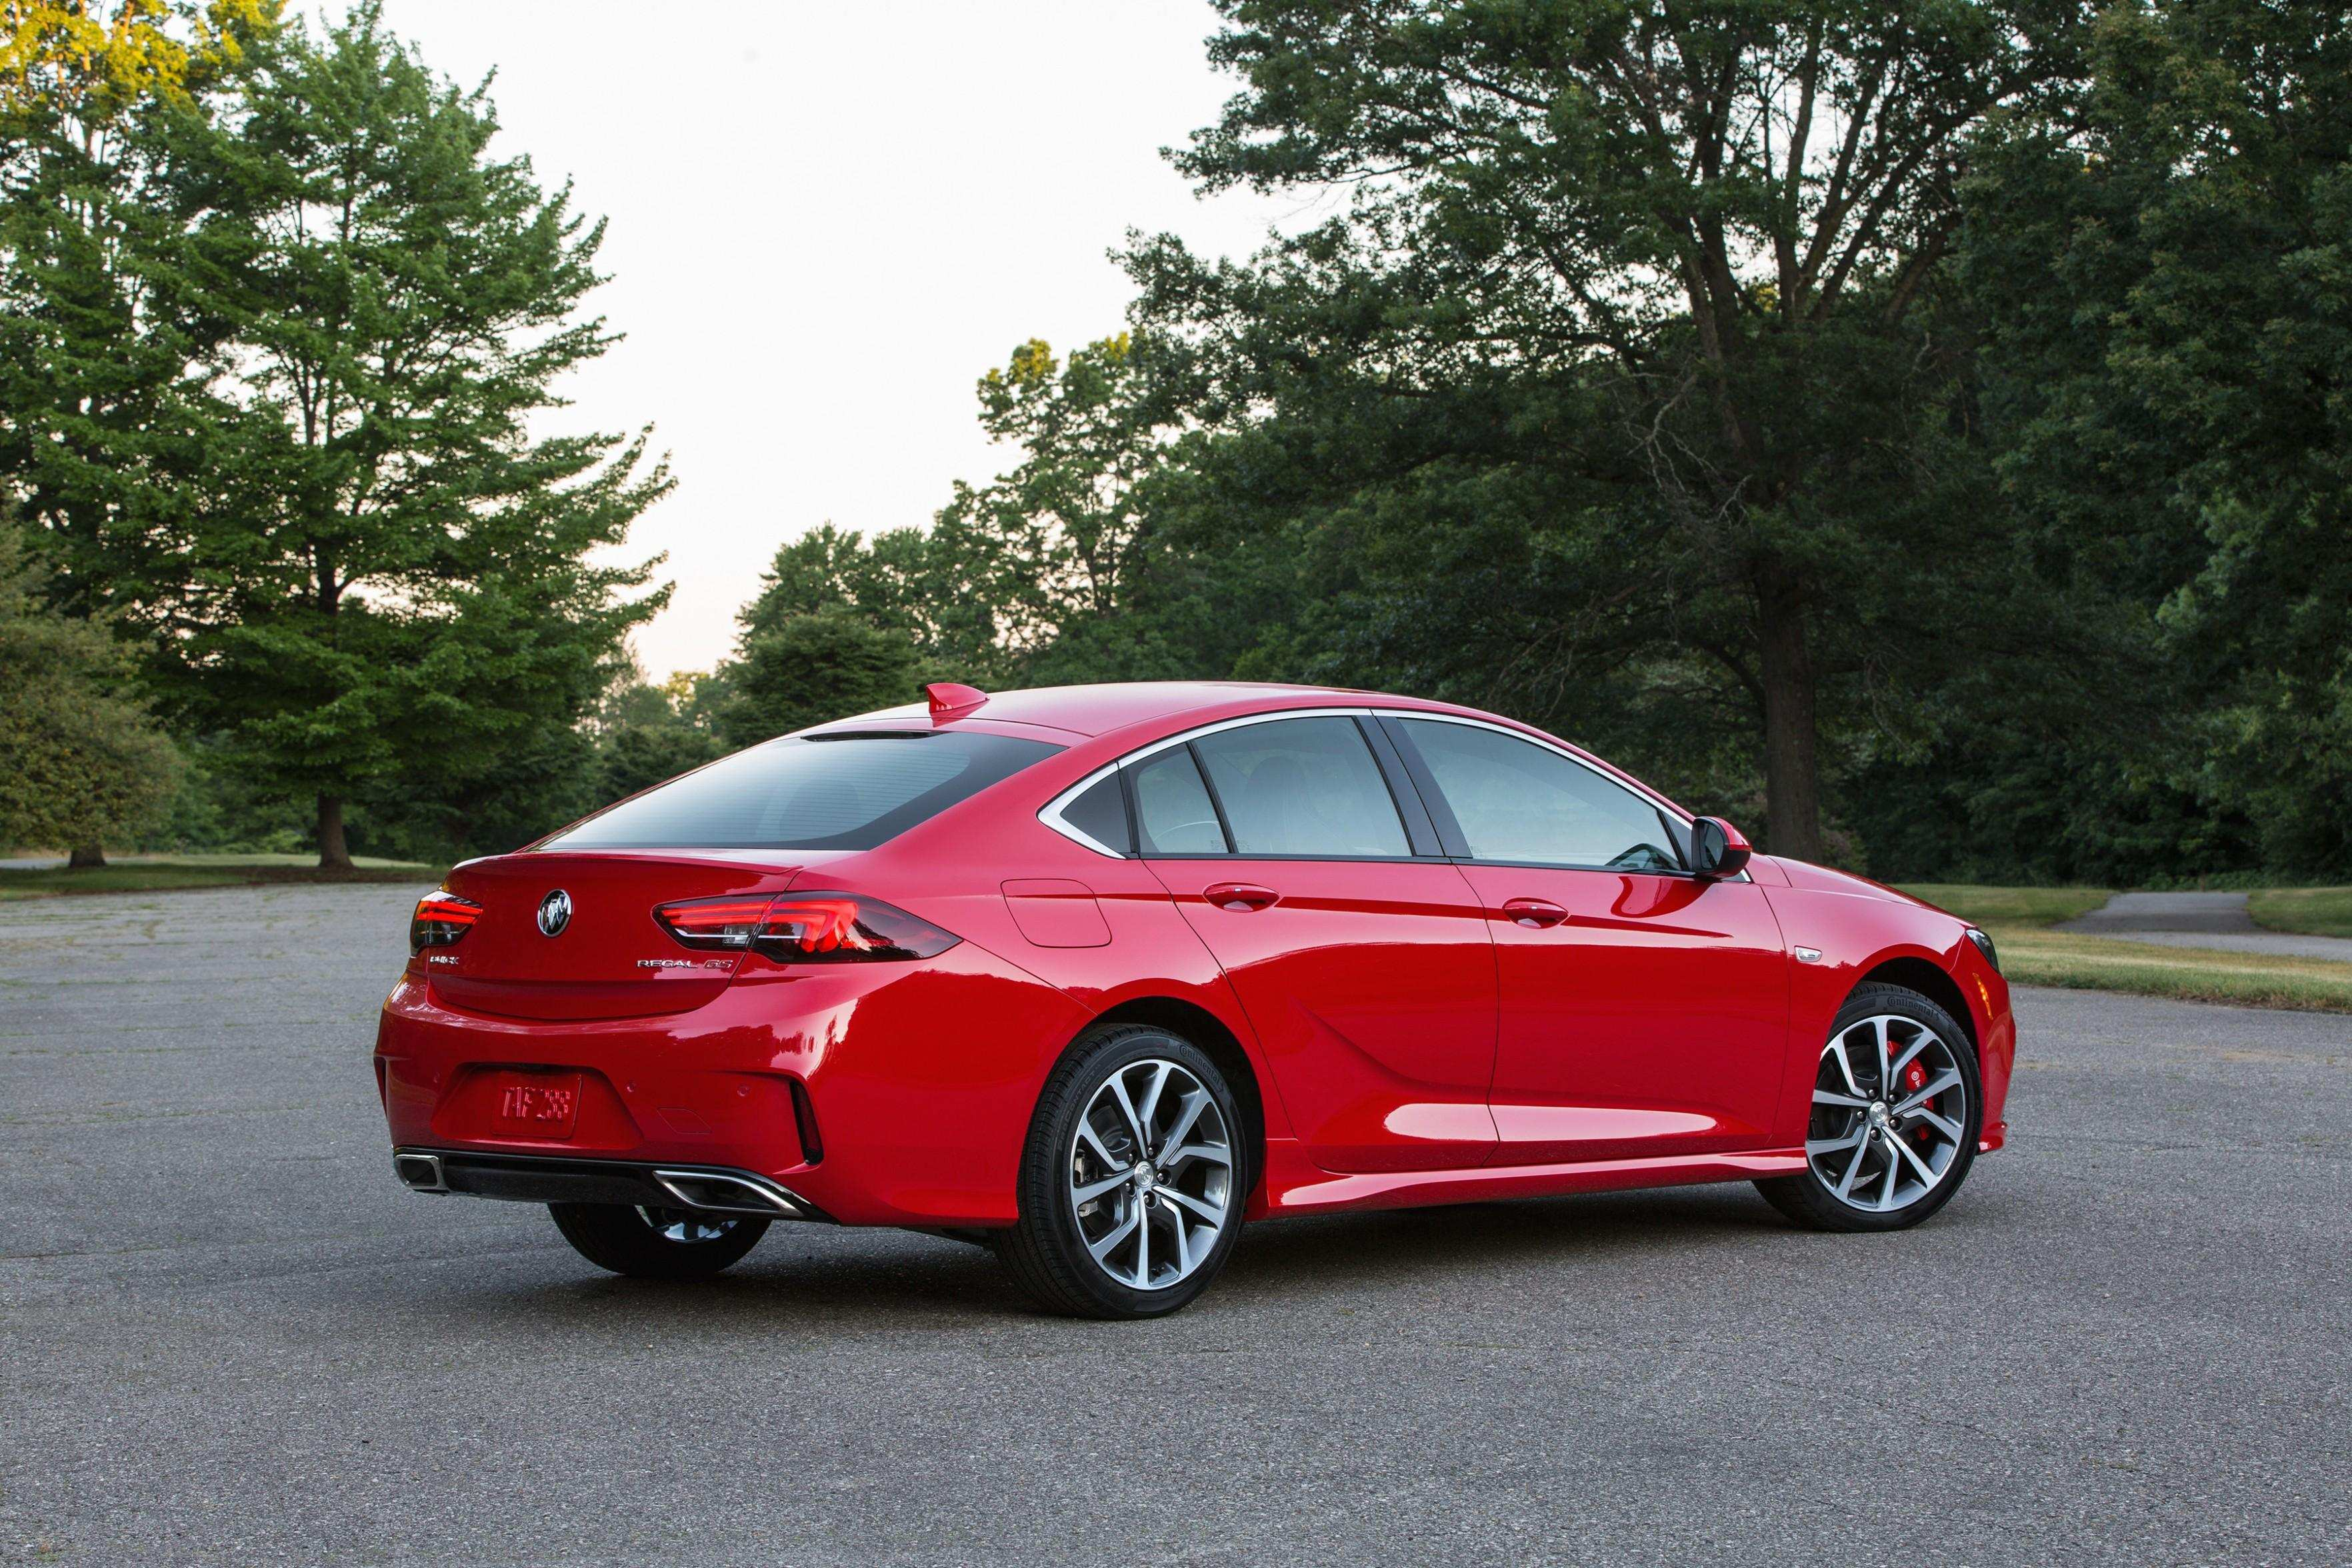 96 New New 2019 Buick Regal Gs Review Specs New Concept for New 2019 Buick Regal Gs Review Specs